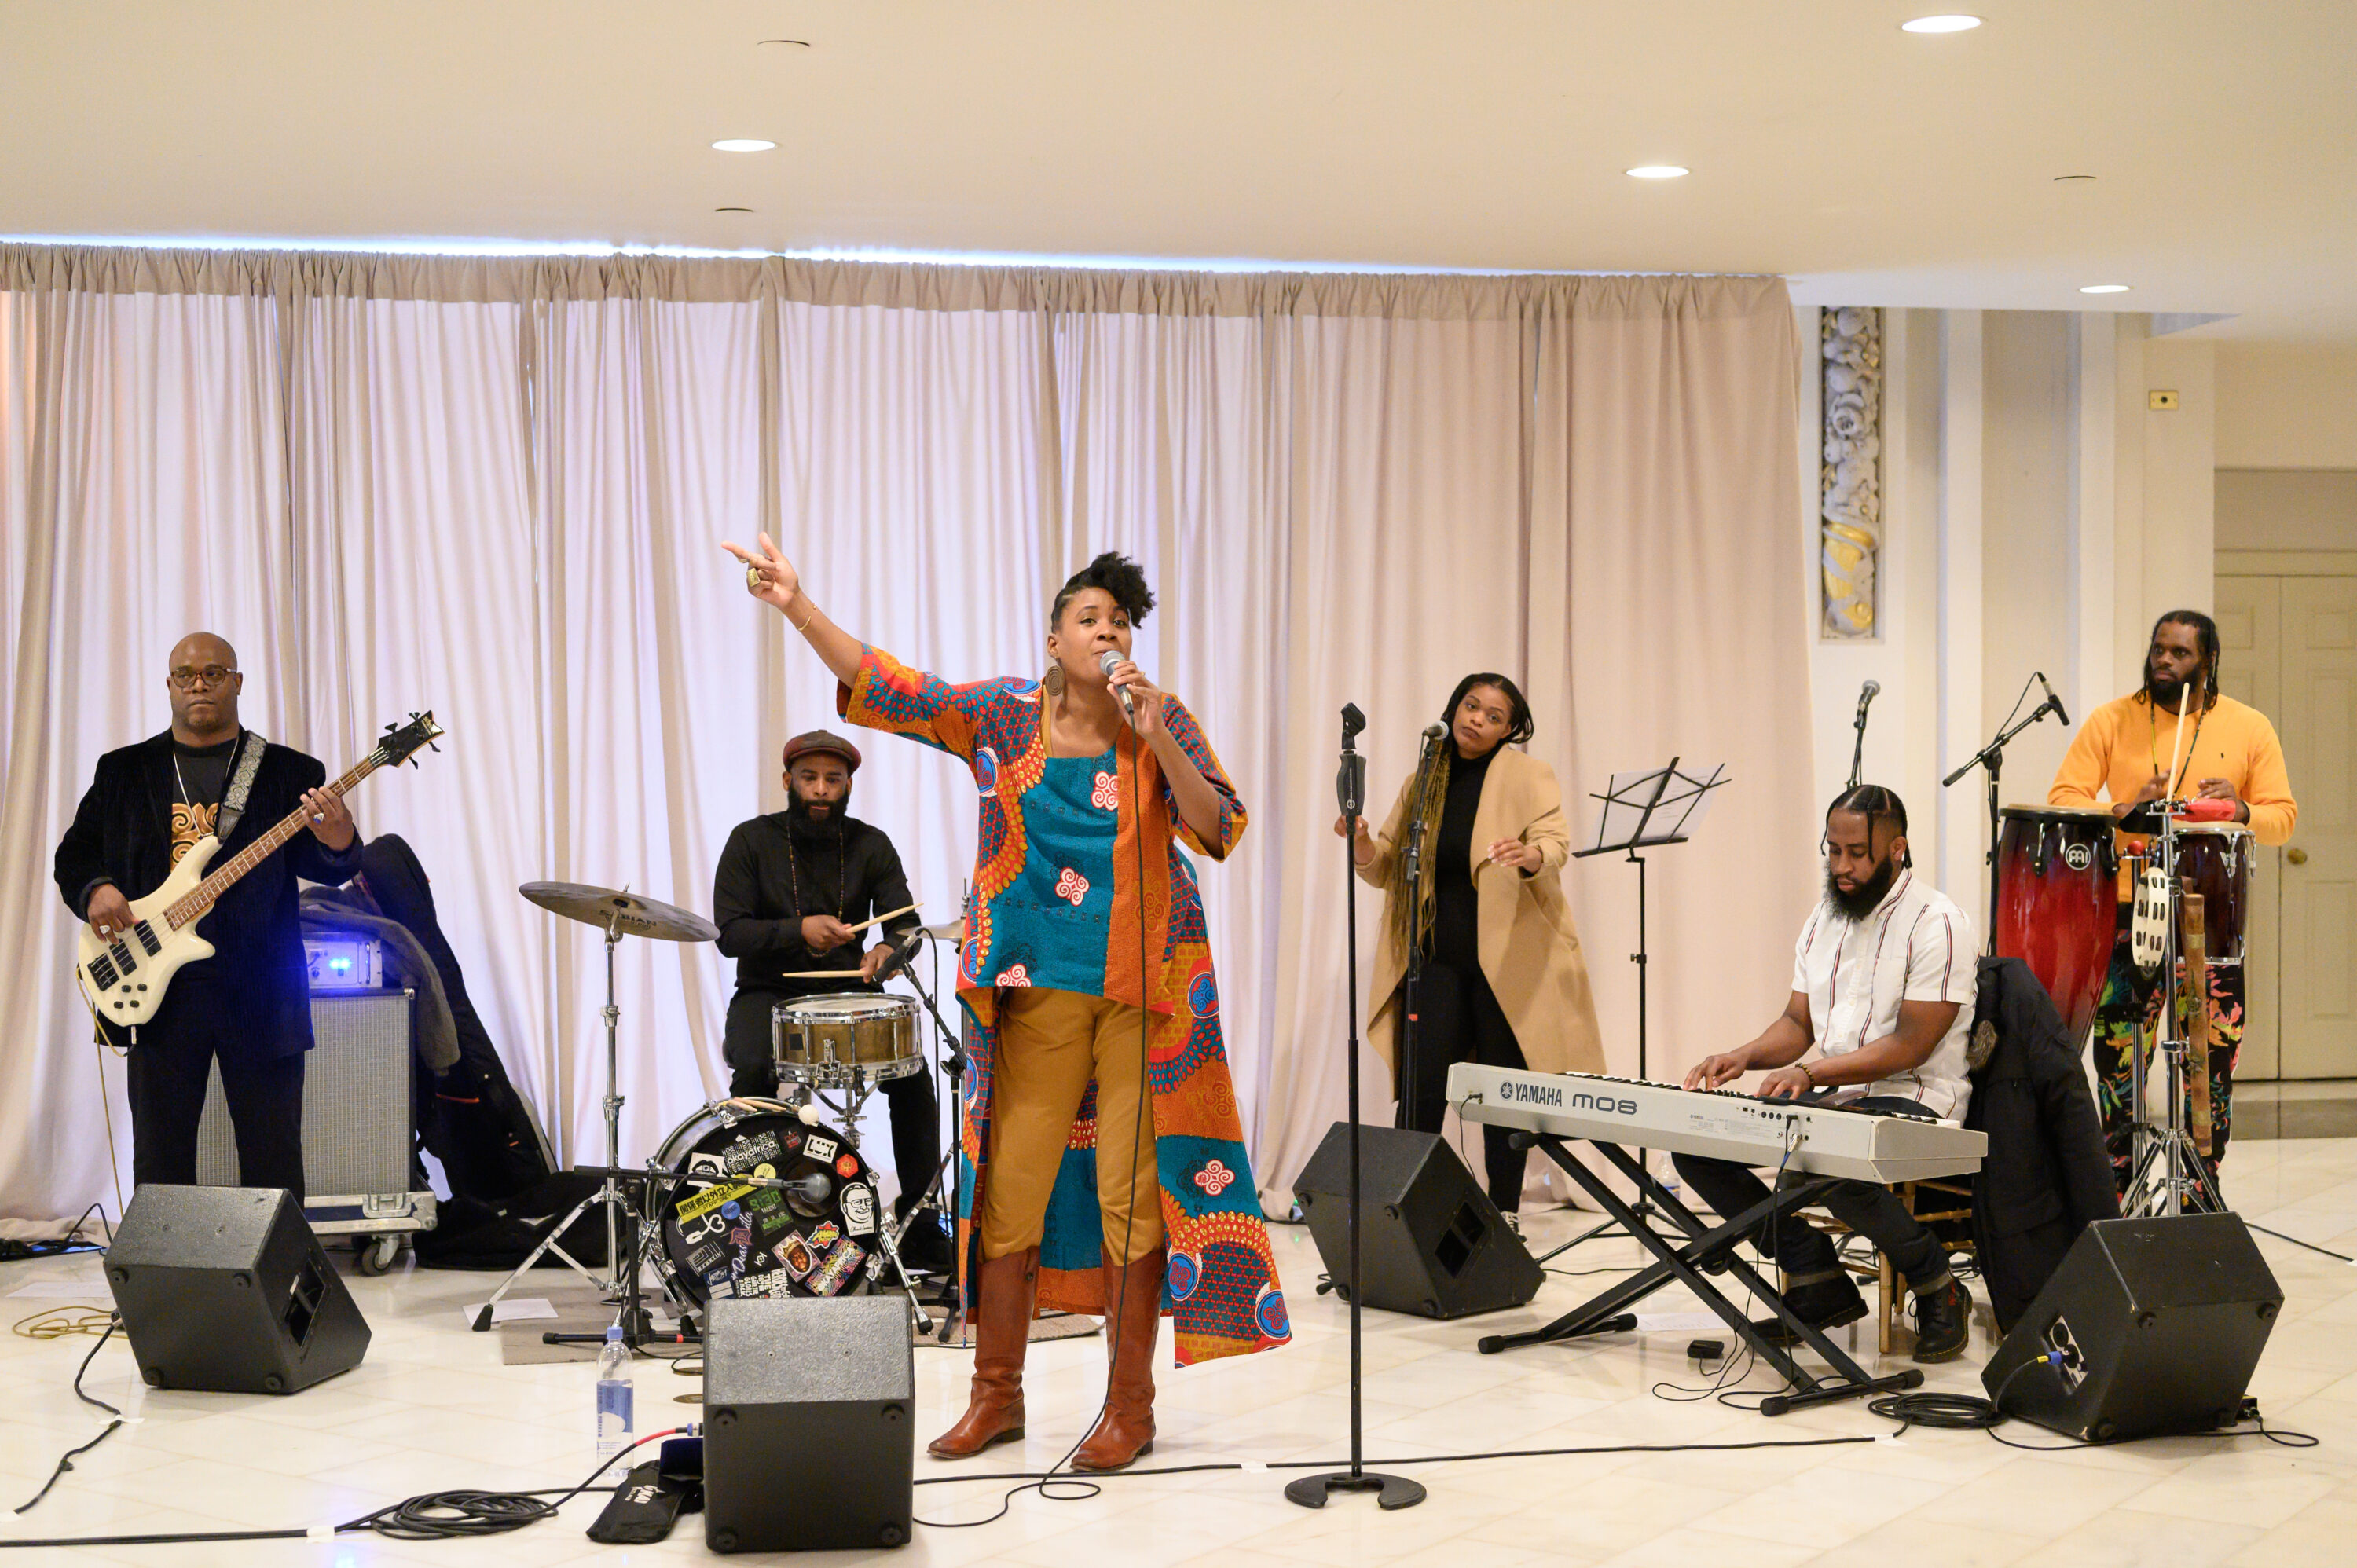 A medium skin-toned adult woman wearing colorful clothing sings into a microphone while a medley of musicians play behind her.